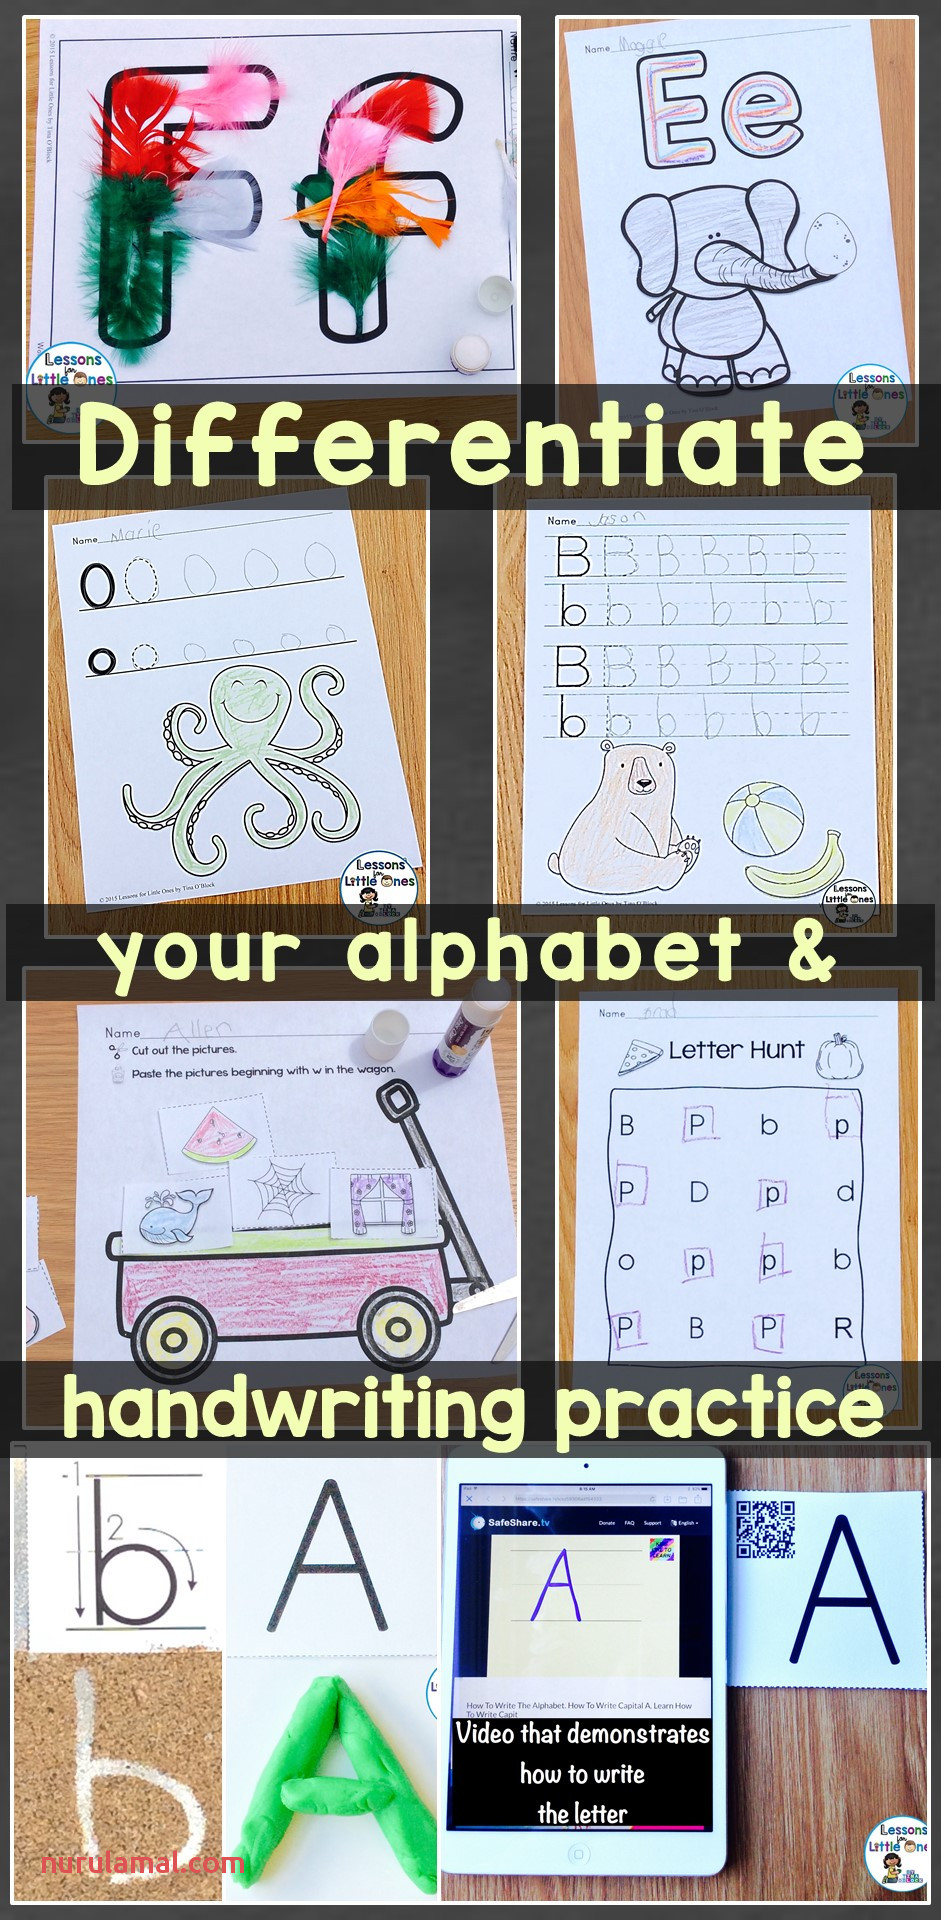 Differentiated Alphabet & Handwriting Practice for